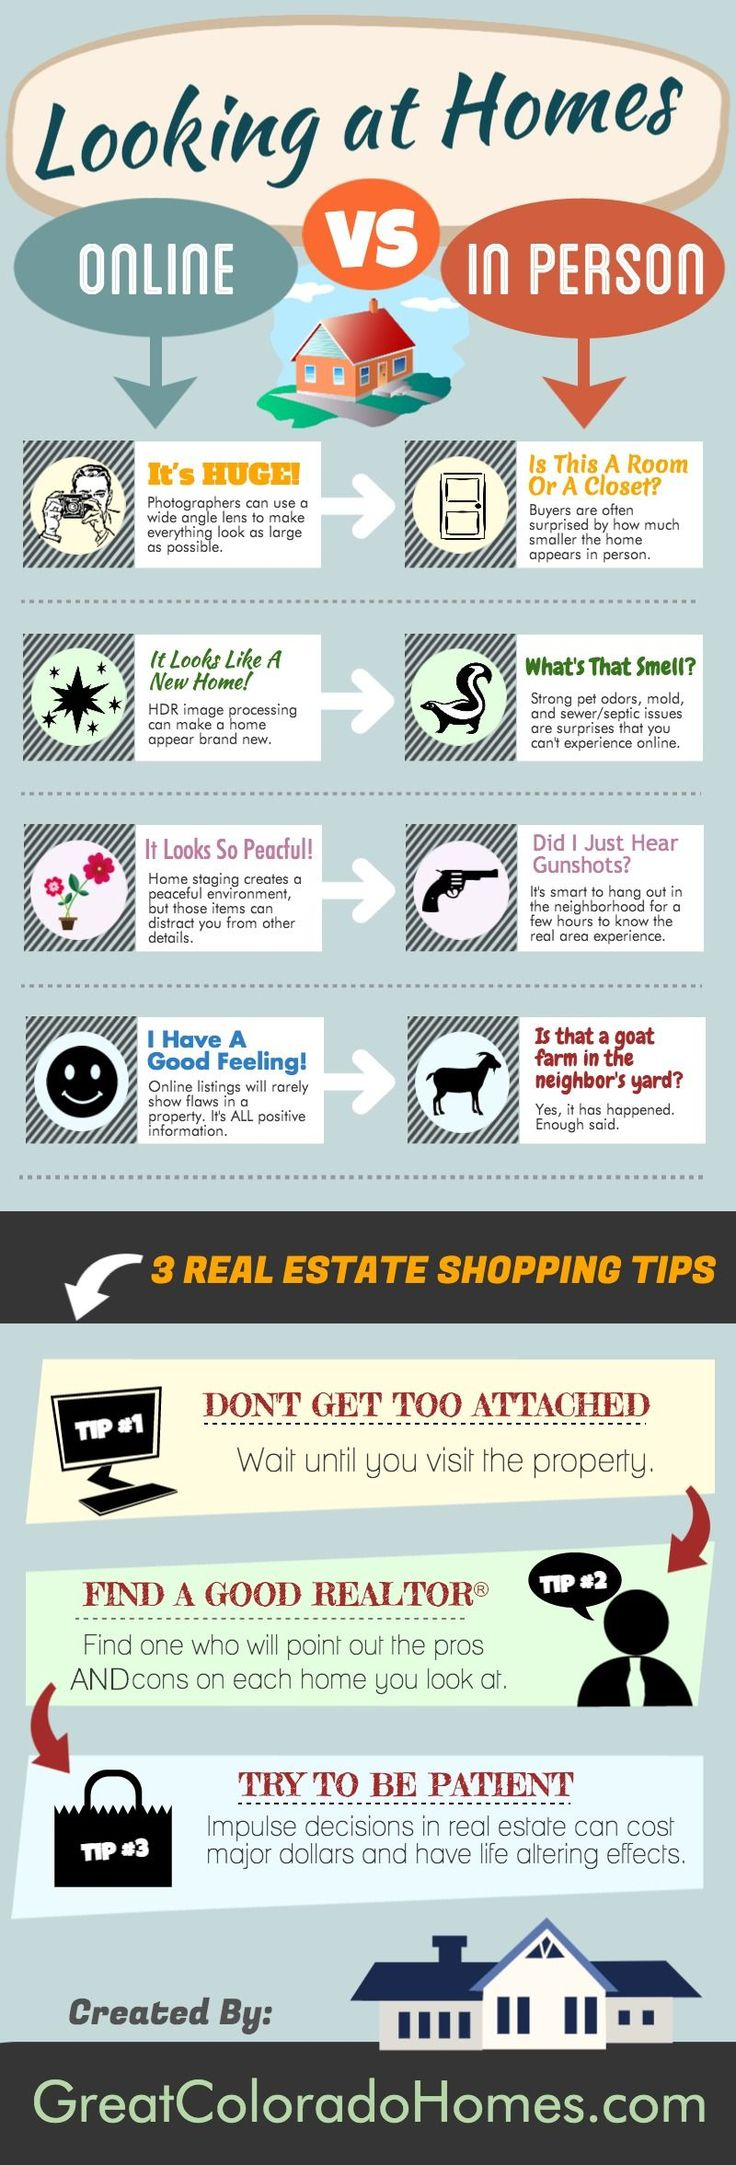 Real Estate | Tipsographic | More estate tips at http://www.tipsographic.com/